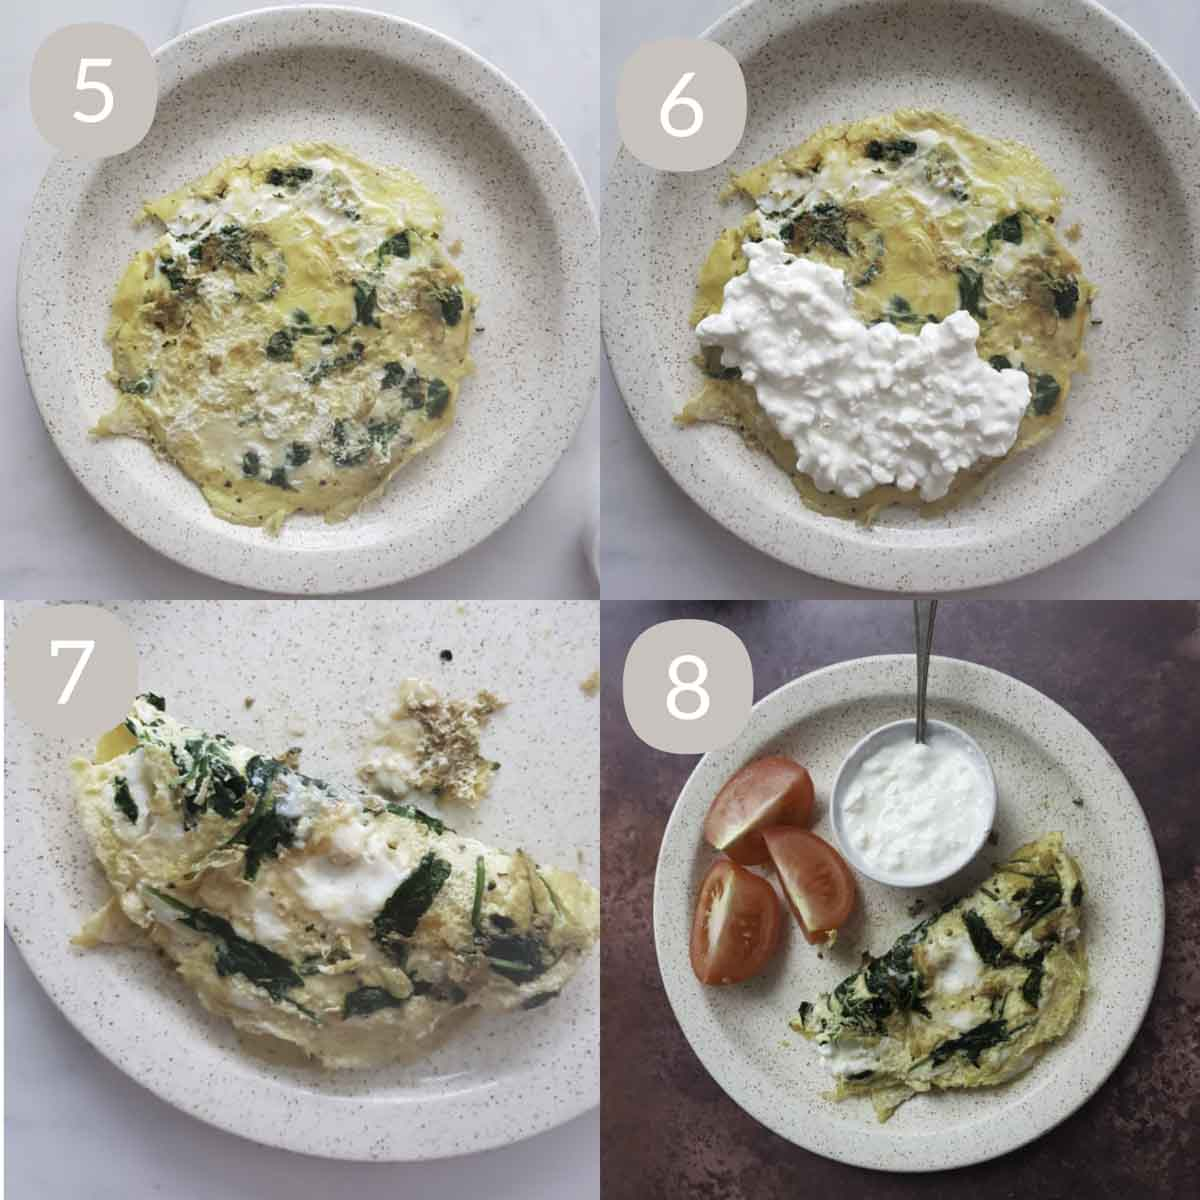 a collage of steps showing serving cottage cheese, spreading cottage cheese, folding omelette